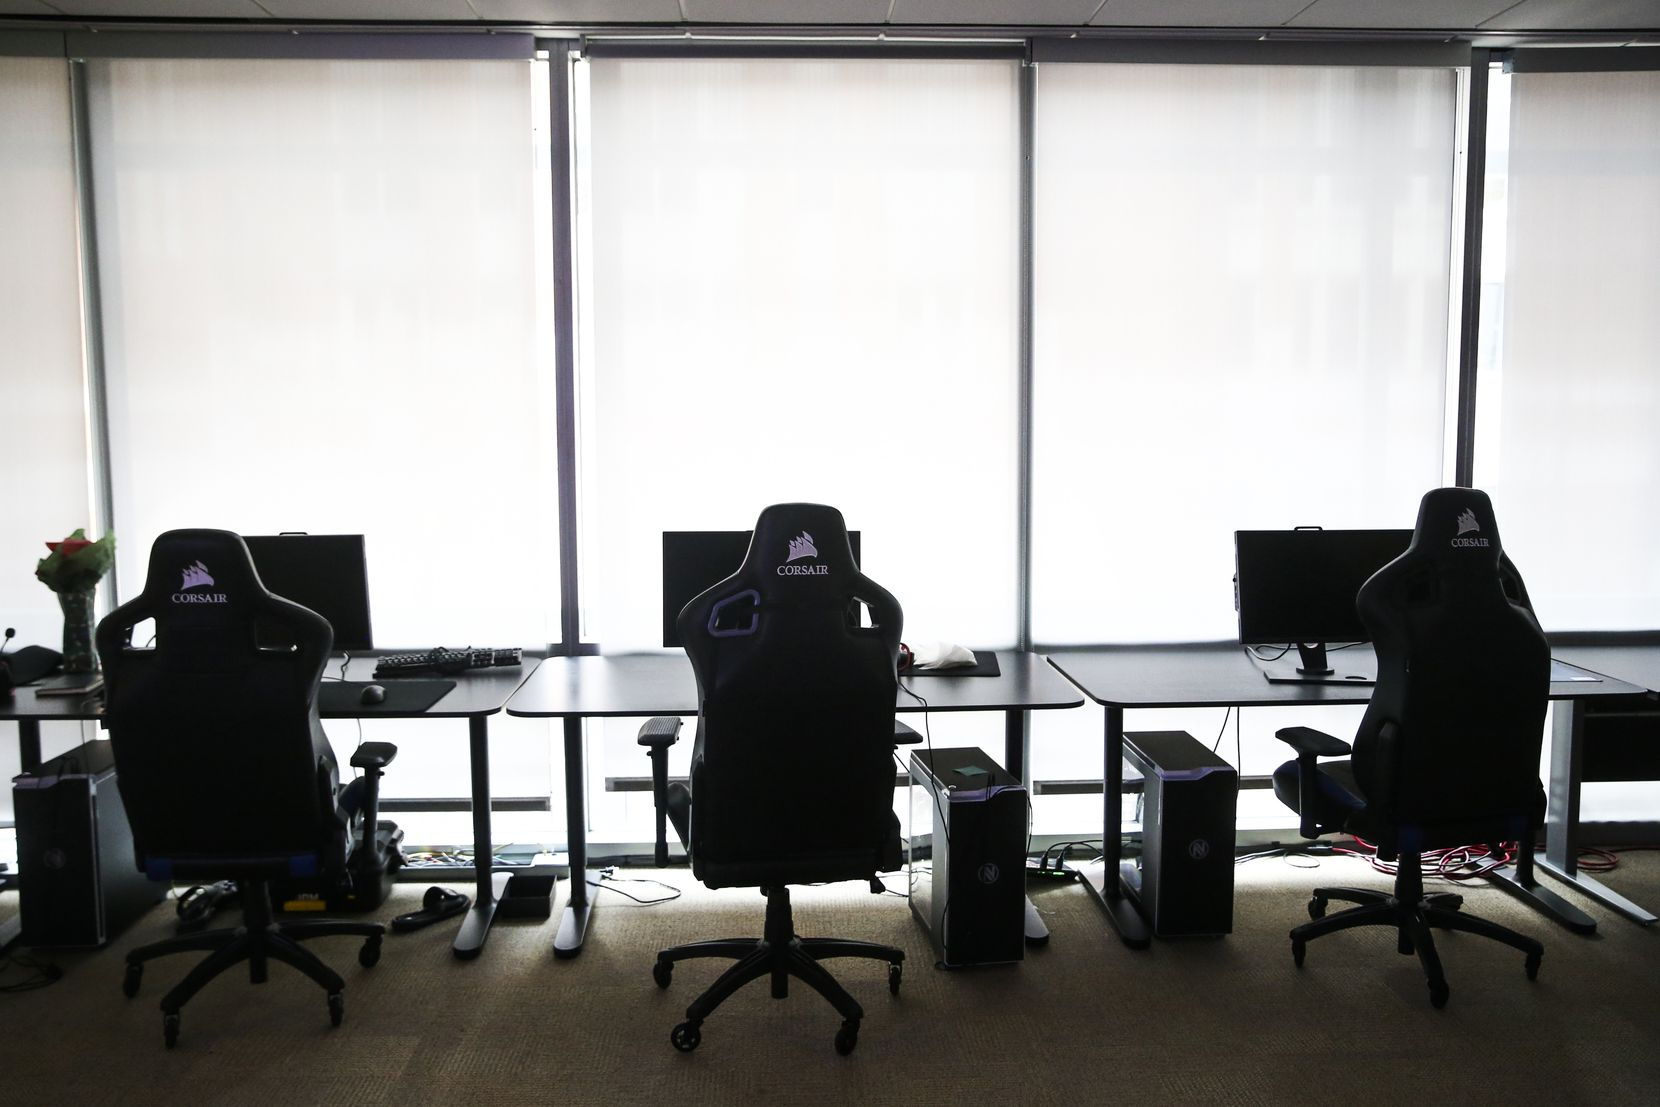 Gaming computers are seen at the current Team Envy and Dallas Fuel office space in Victory Park on Friday, Feb. 1, 2019 in Dallas. (Ryan Michalesko/The Dallas Morning News)